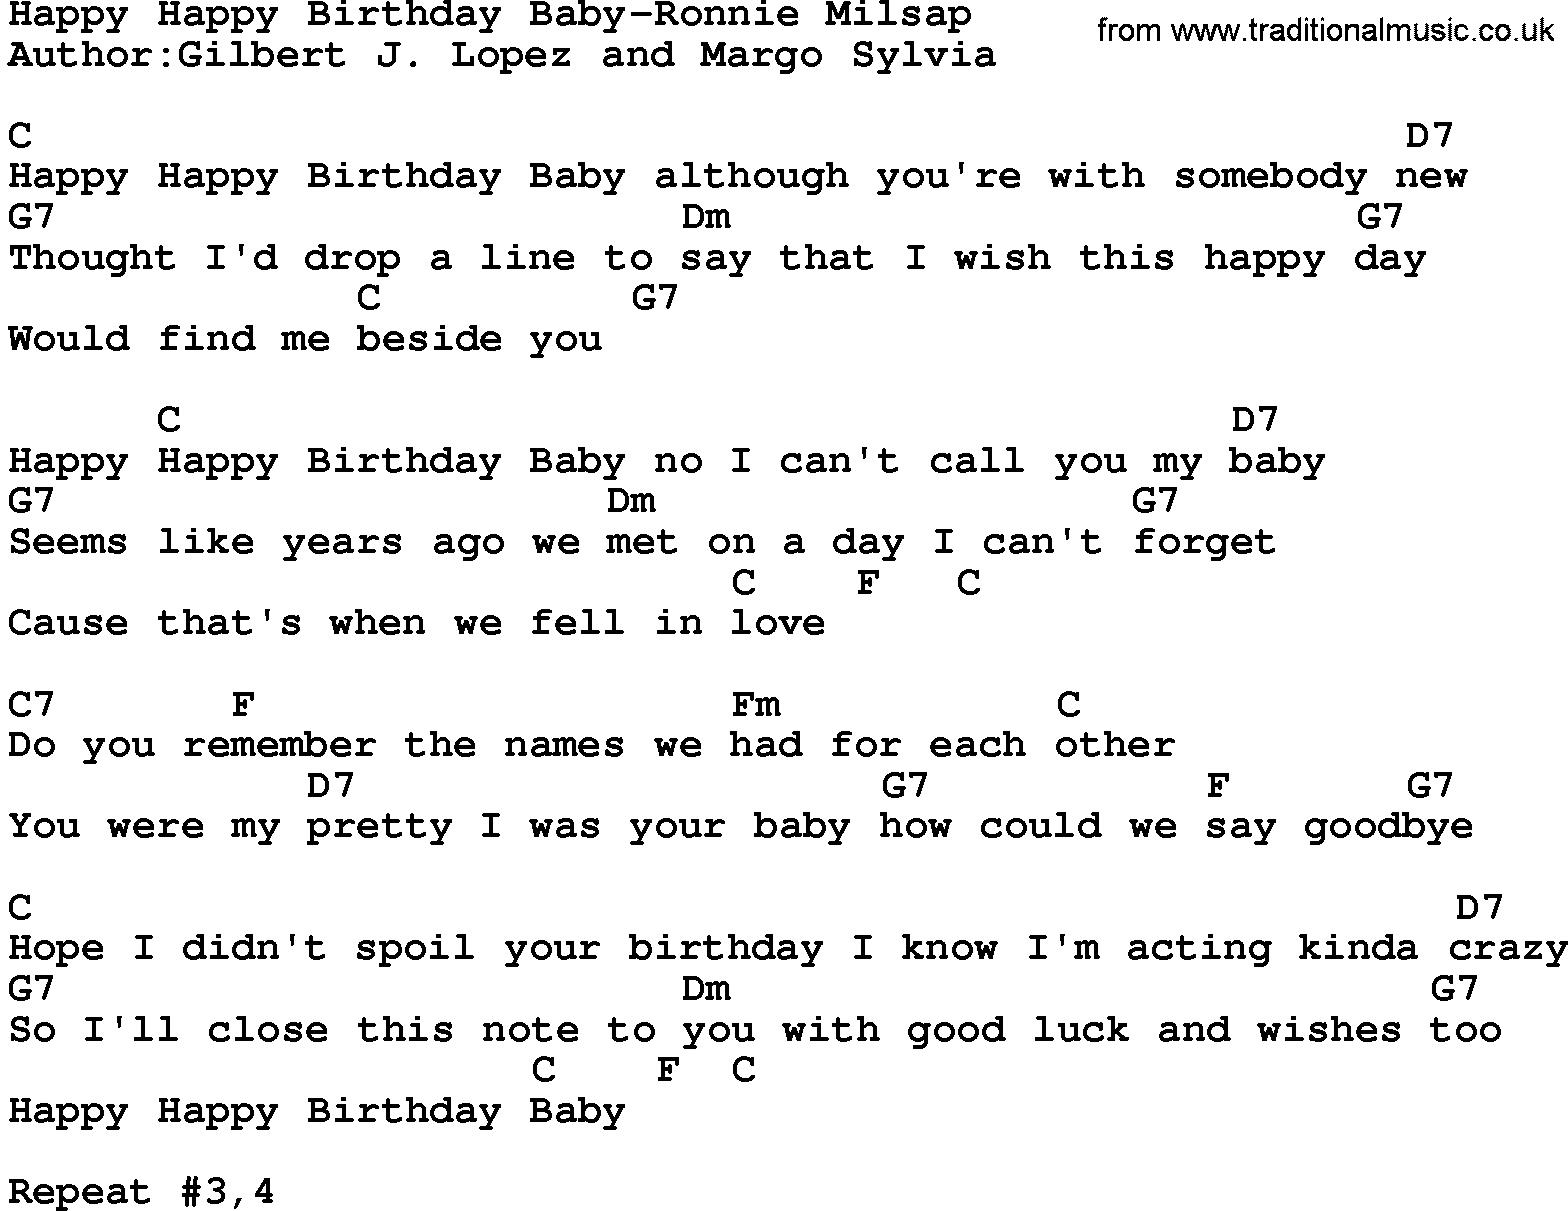 happy birthday lyrics and chords ; happy_happy_birthday_baby-ronnie_milsap